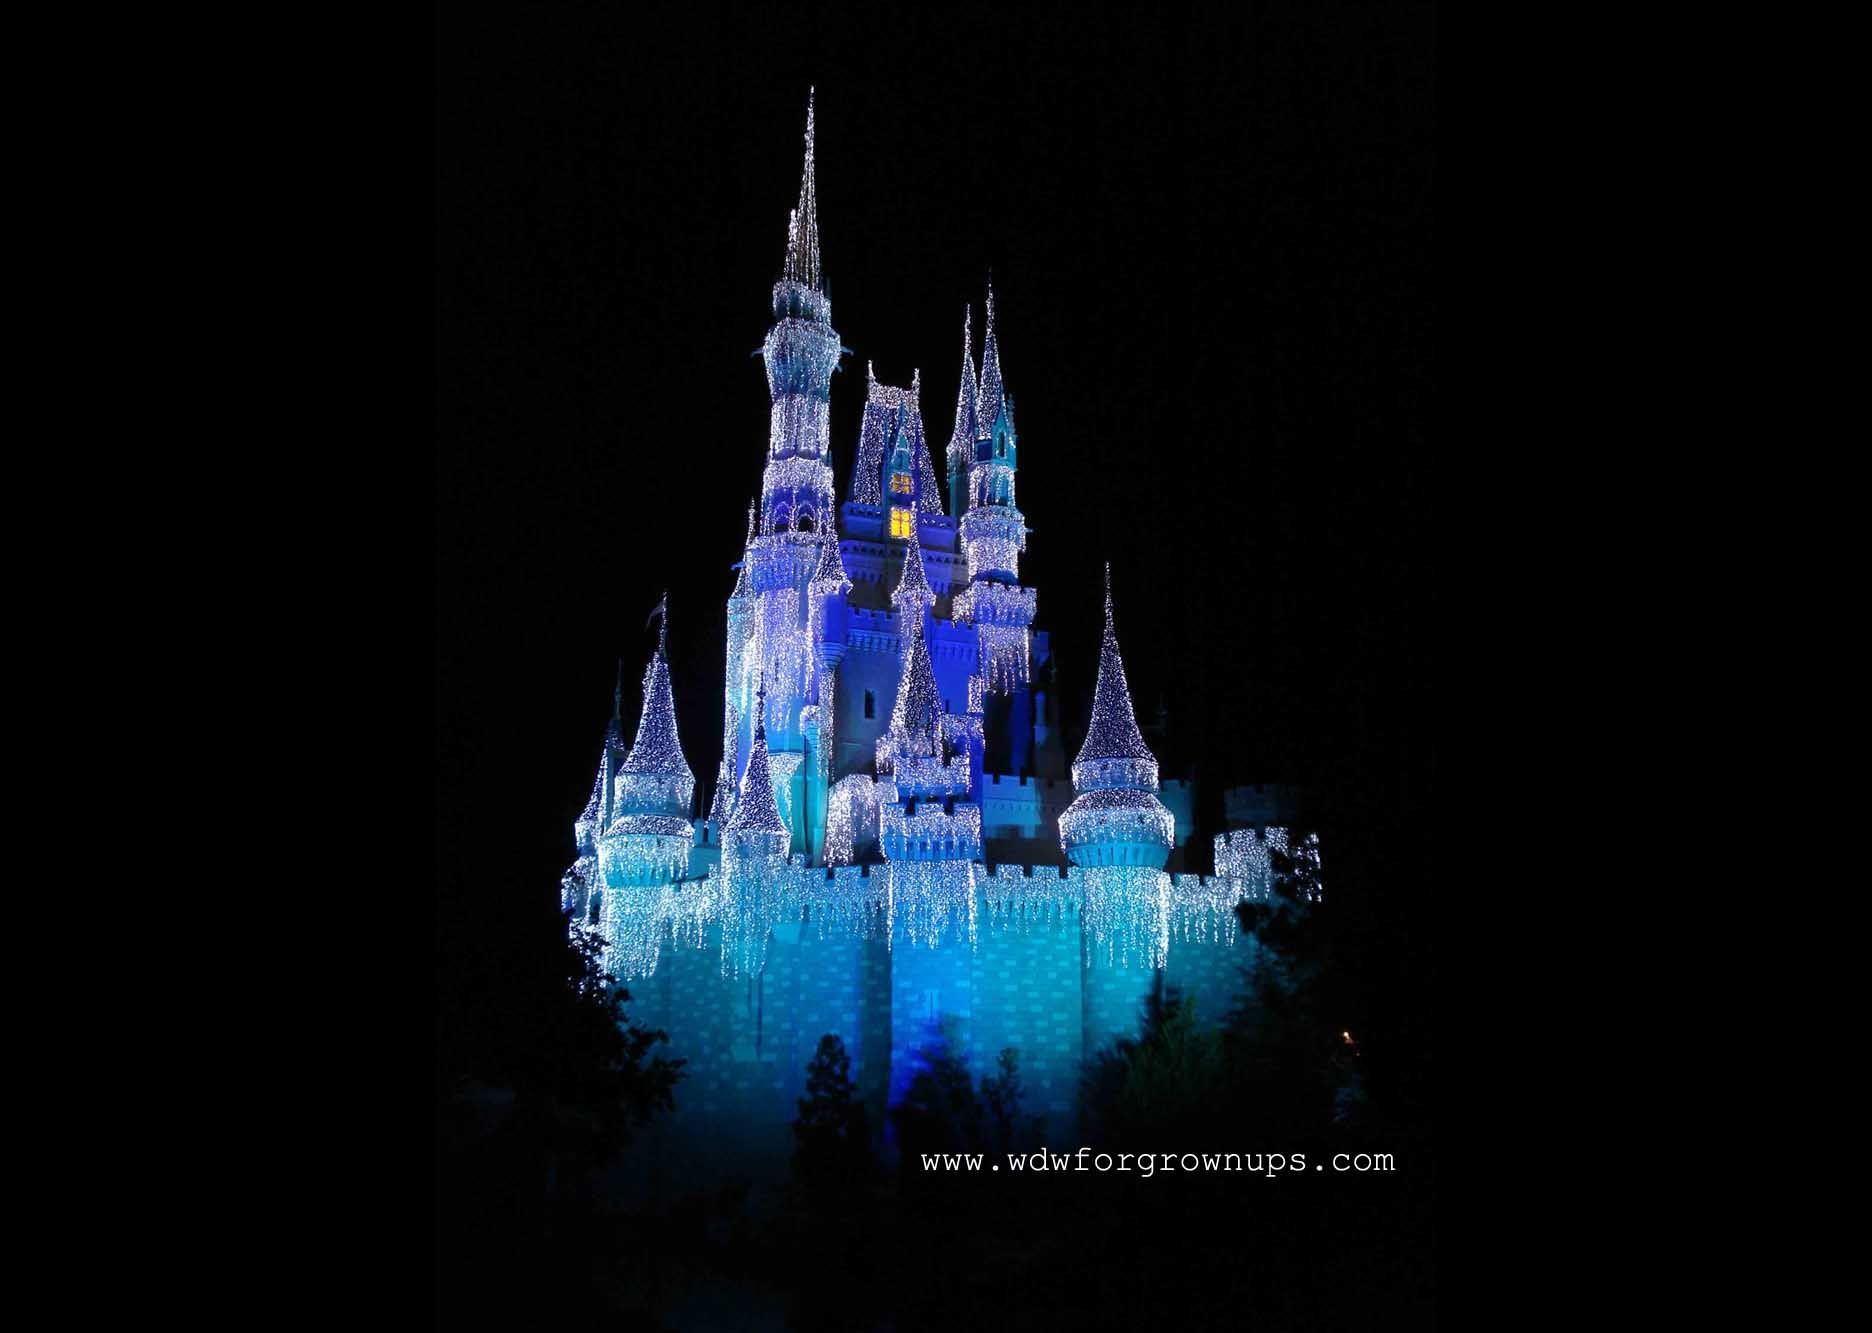 Disney Desktop Wallpaper Walt Disney World For Grownups Disney Desktop Wallpaper Holiday Iphone Wallpaper Wallpaper Iphone Disney